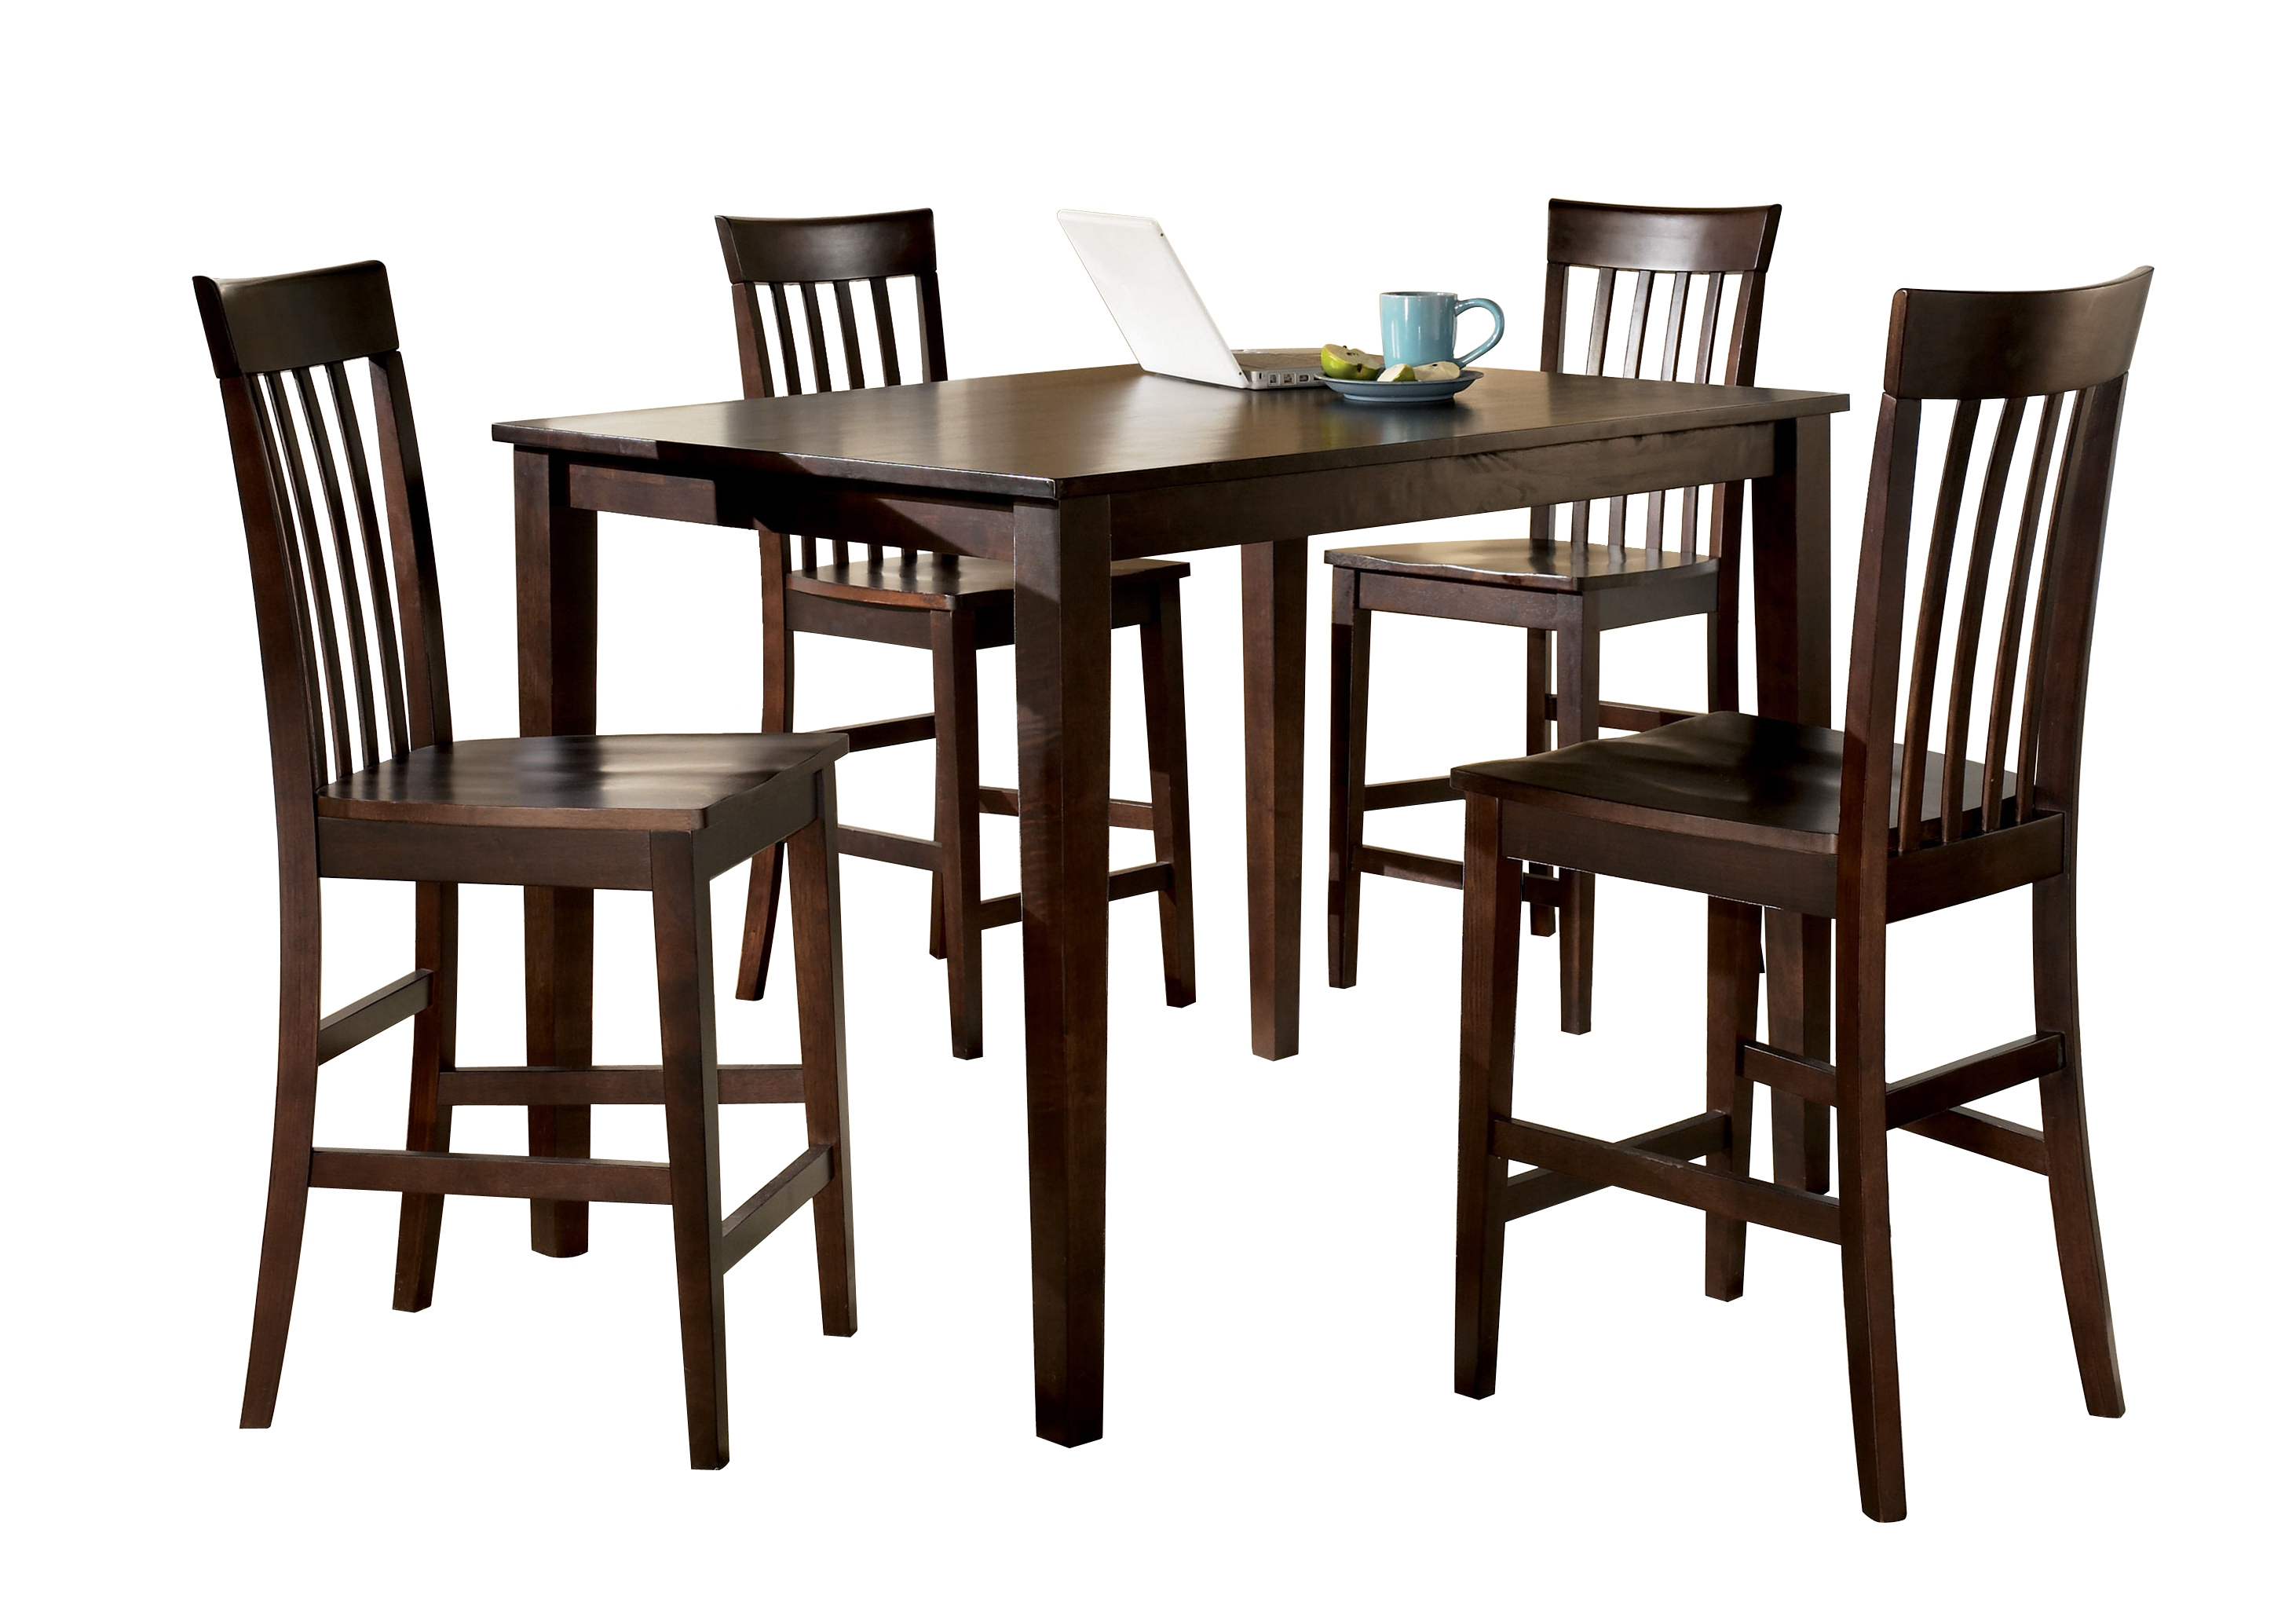 Ashley Furniture Hyland 5pc Counter Table Set The Classy Home